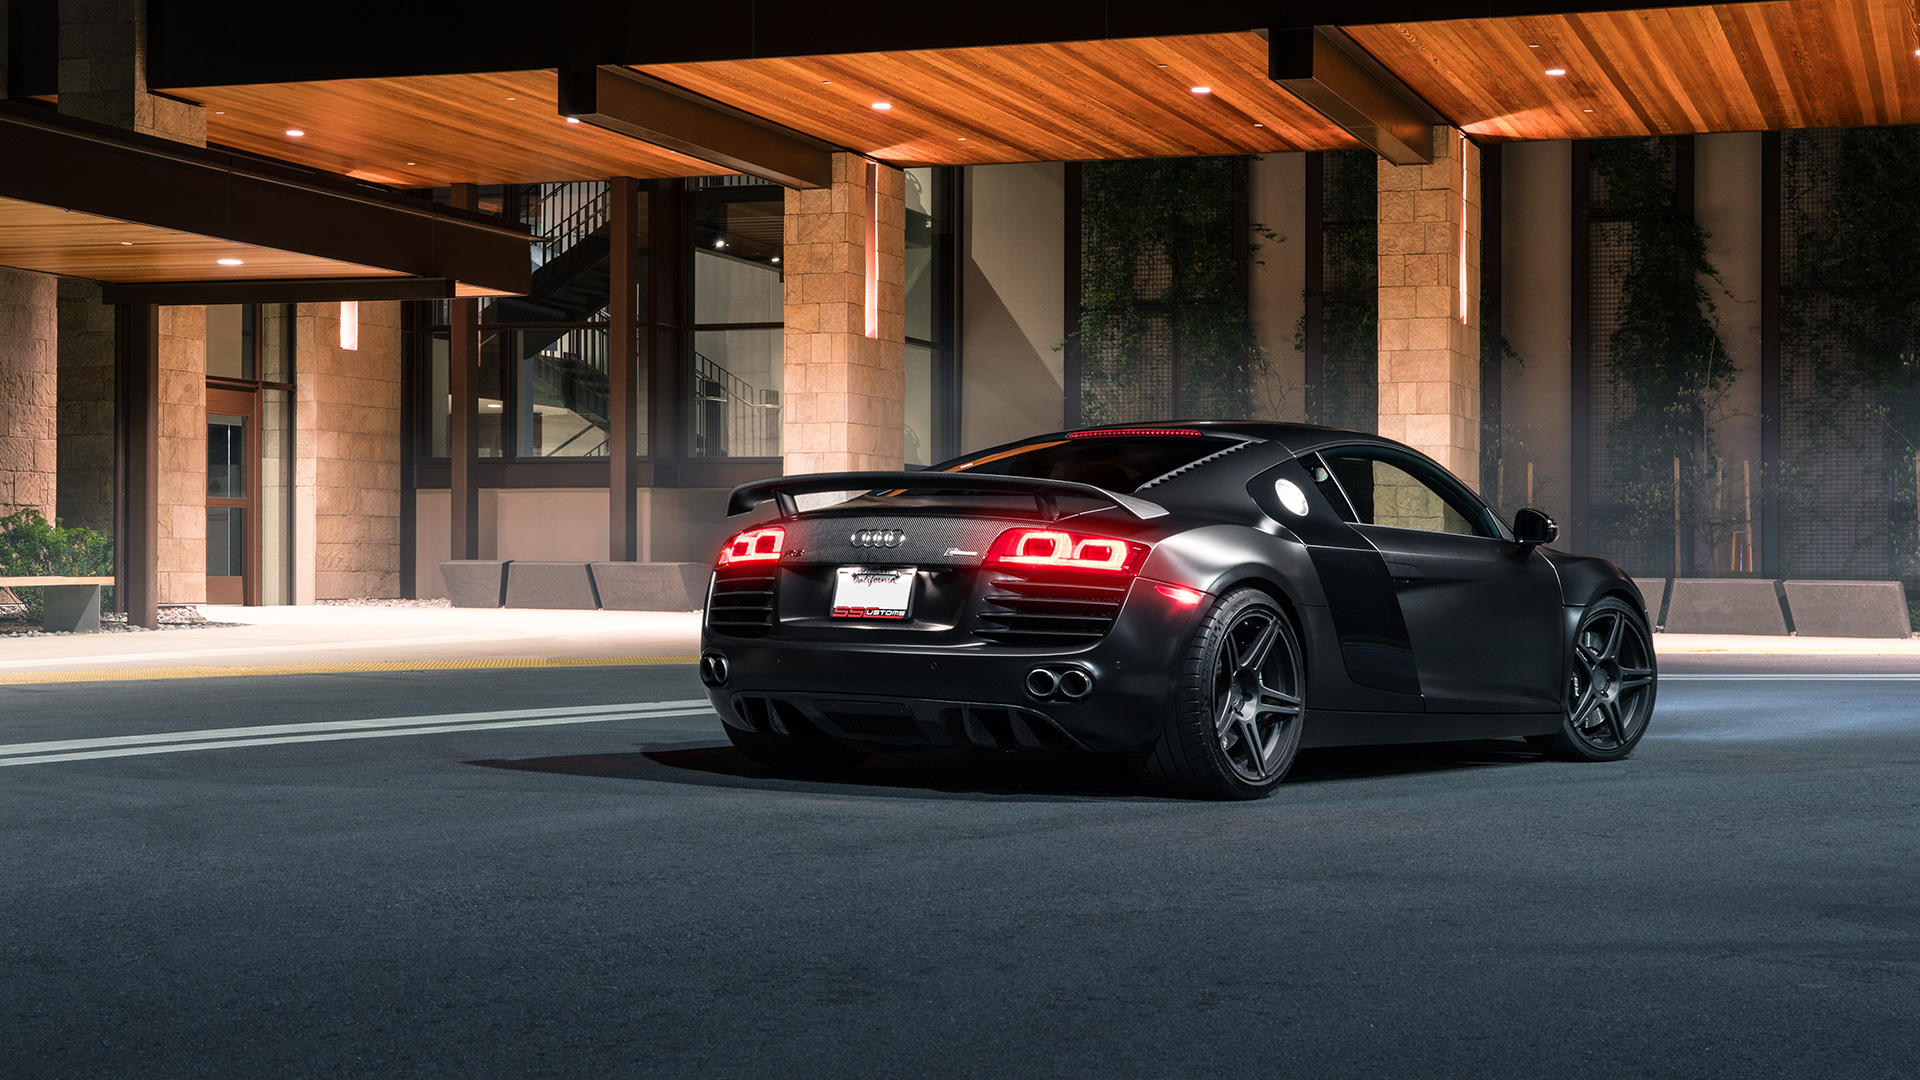 Audi R8 Ss Customs Wallpaper Hd Car Wallpapers